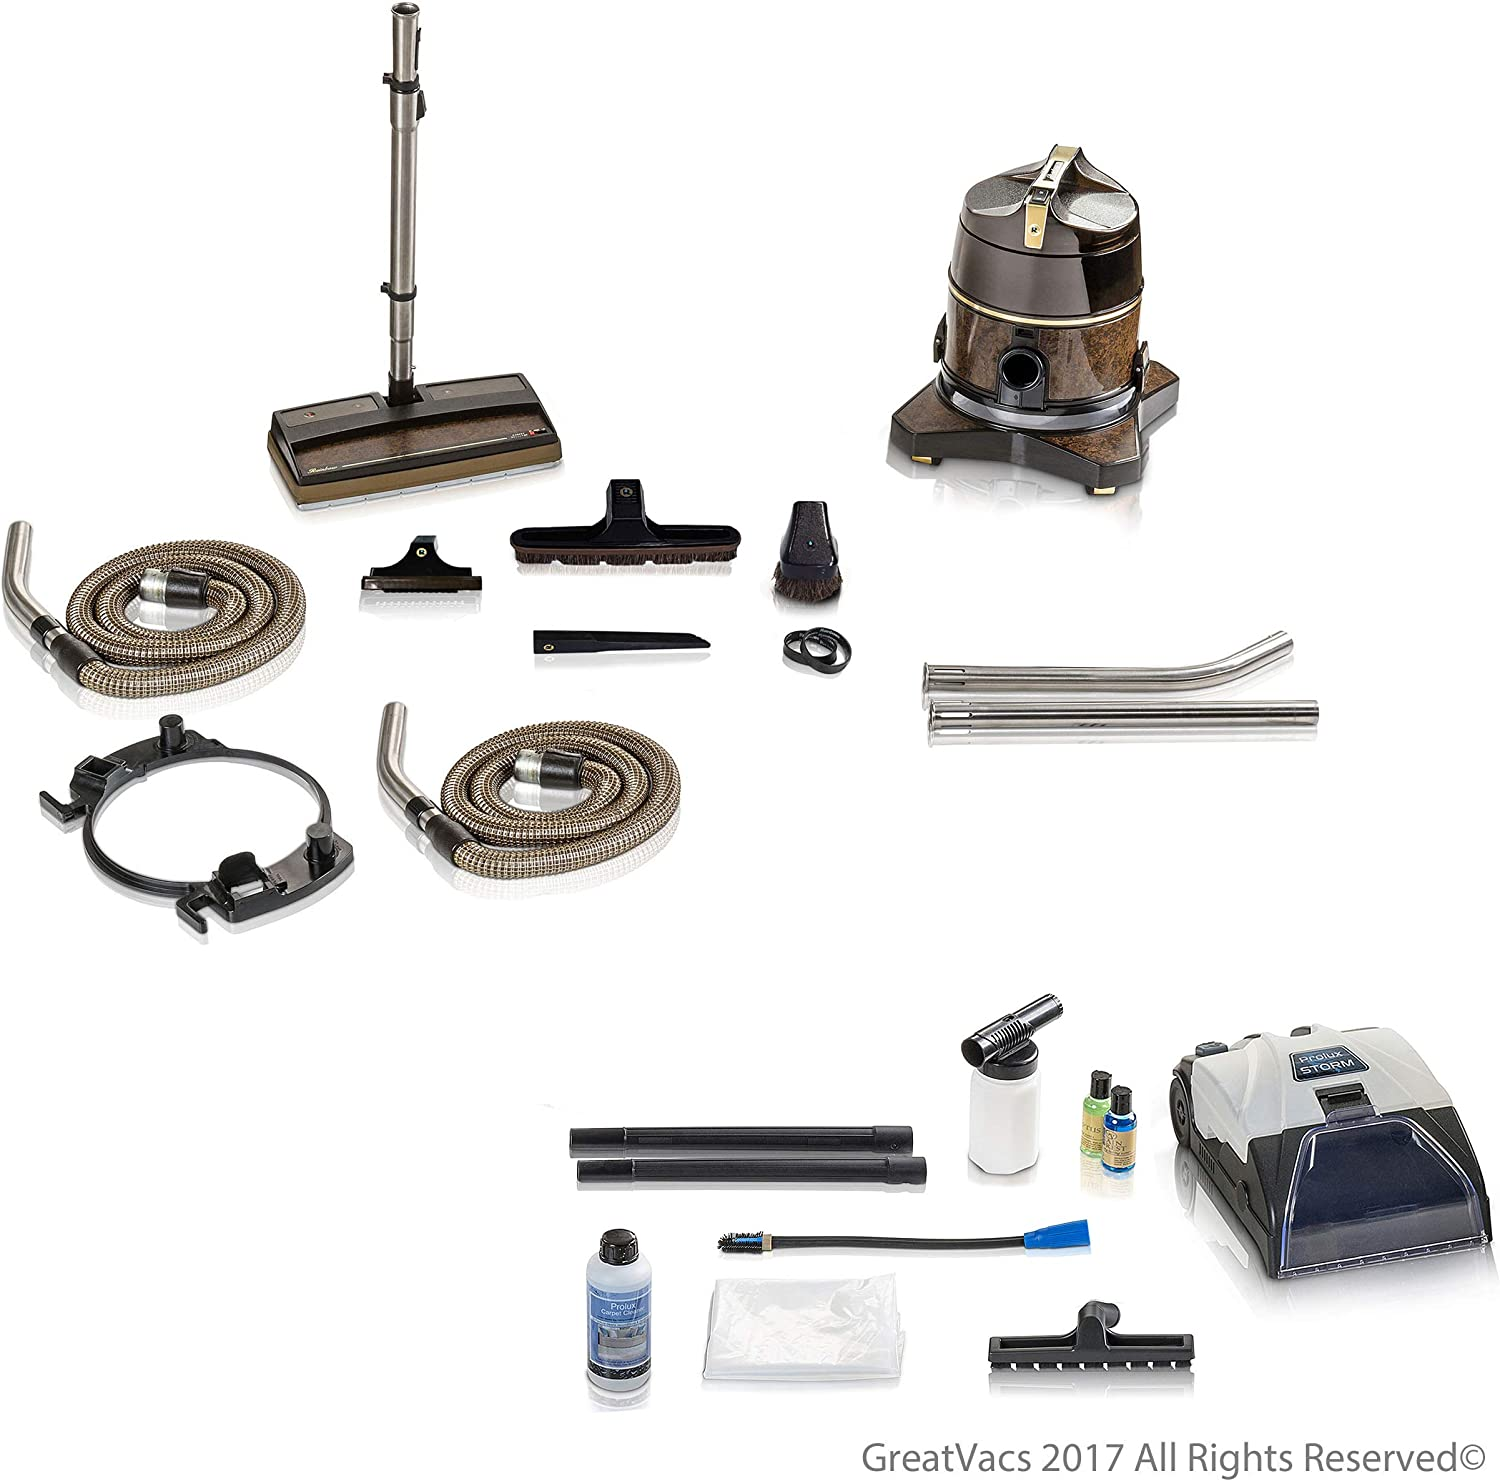 Reconditioned Genuine Rainbow D4 Vacuum Cleaner and Prolux Storm Shampooer 10pc Bundle 5YR Warranty (Renewed)